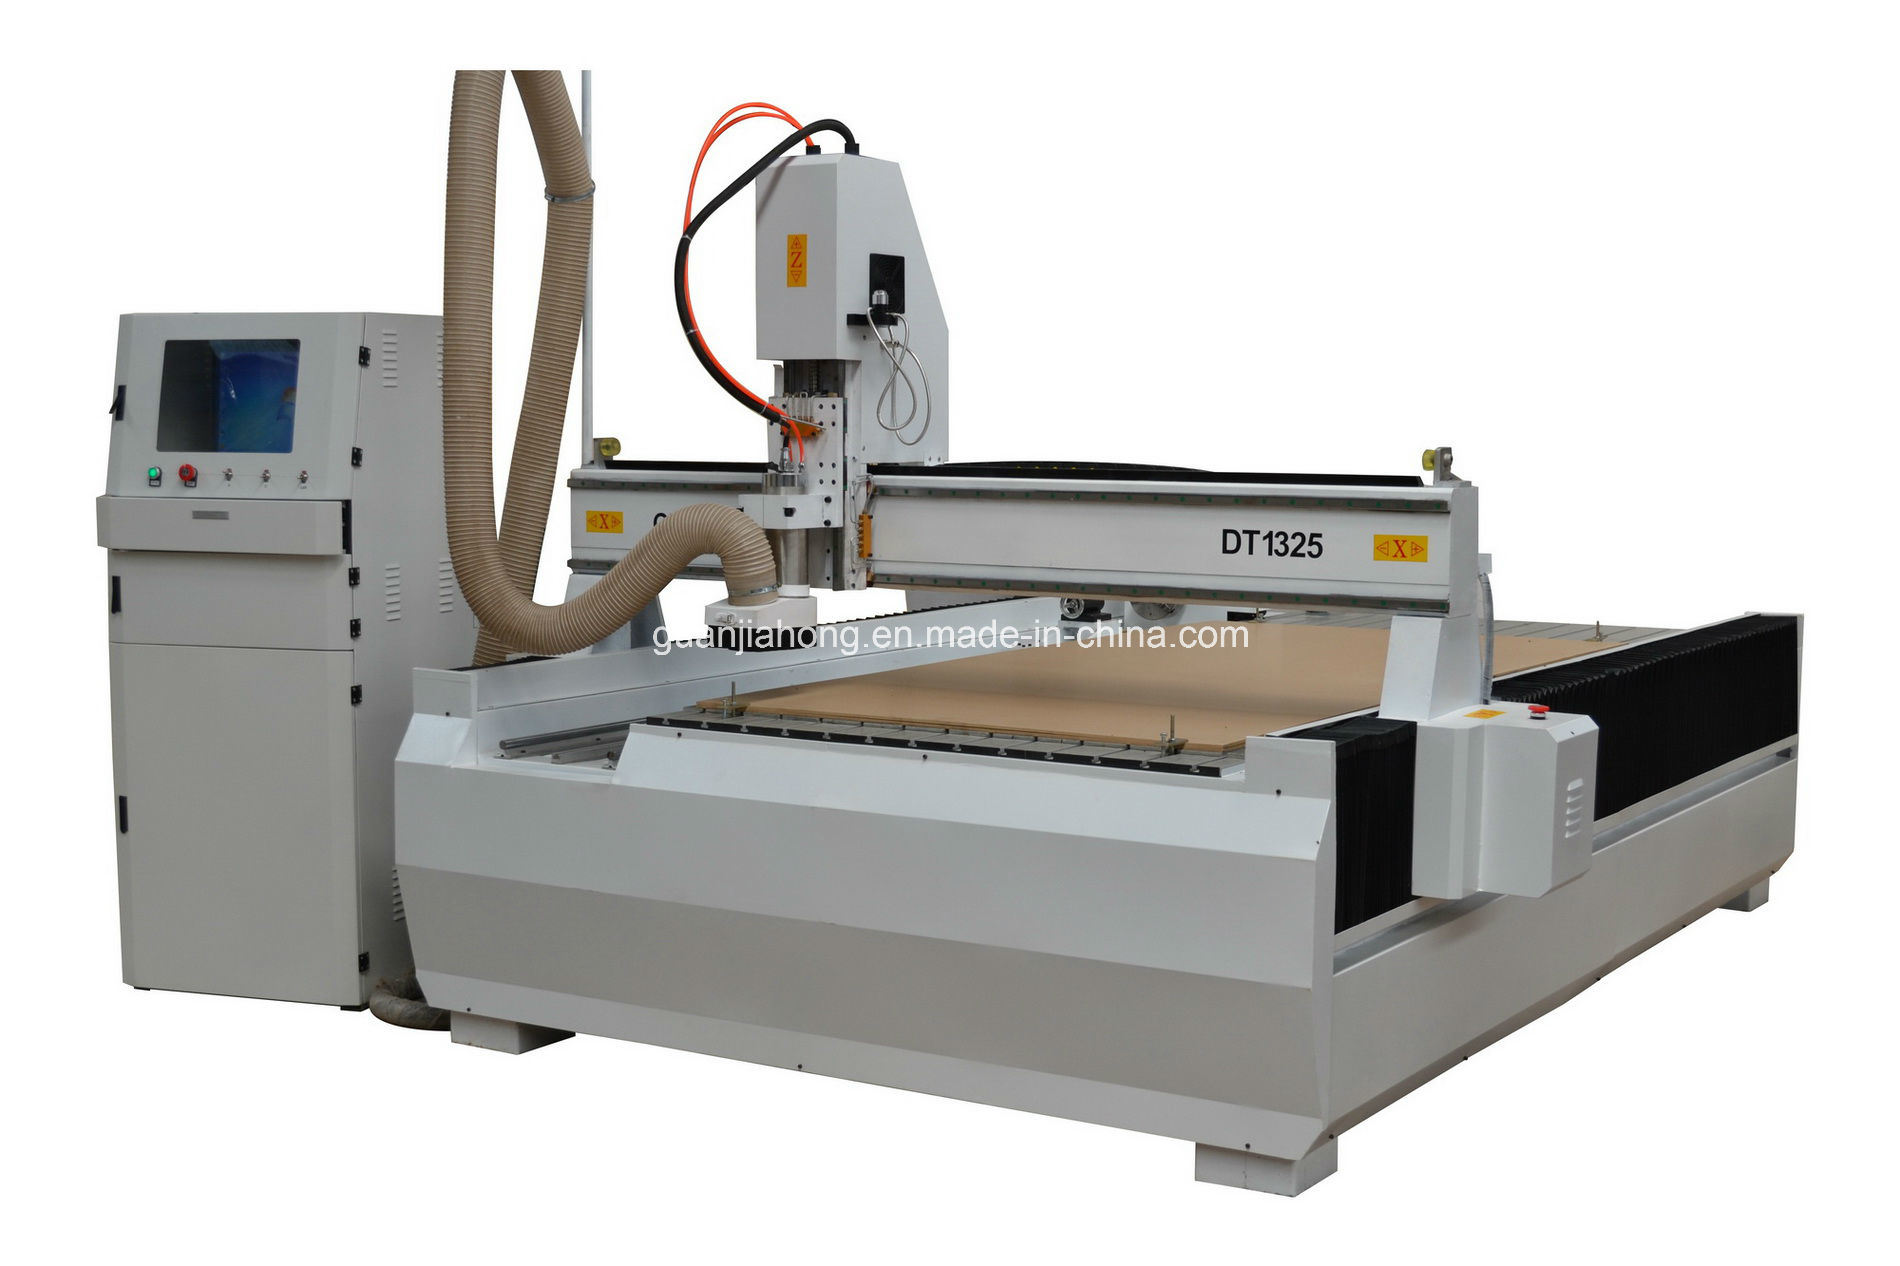 2D & 3D Woodworking CNC Router 1325